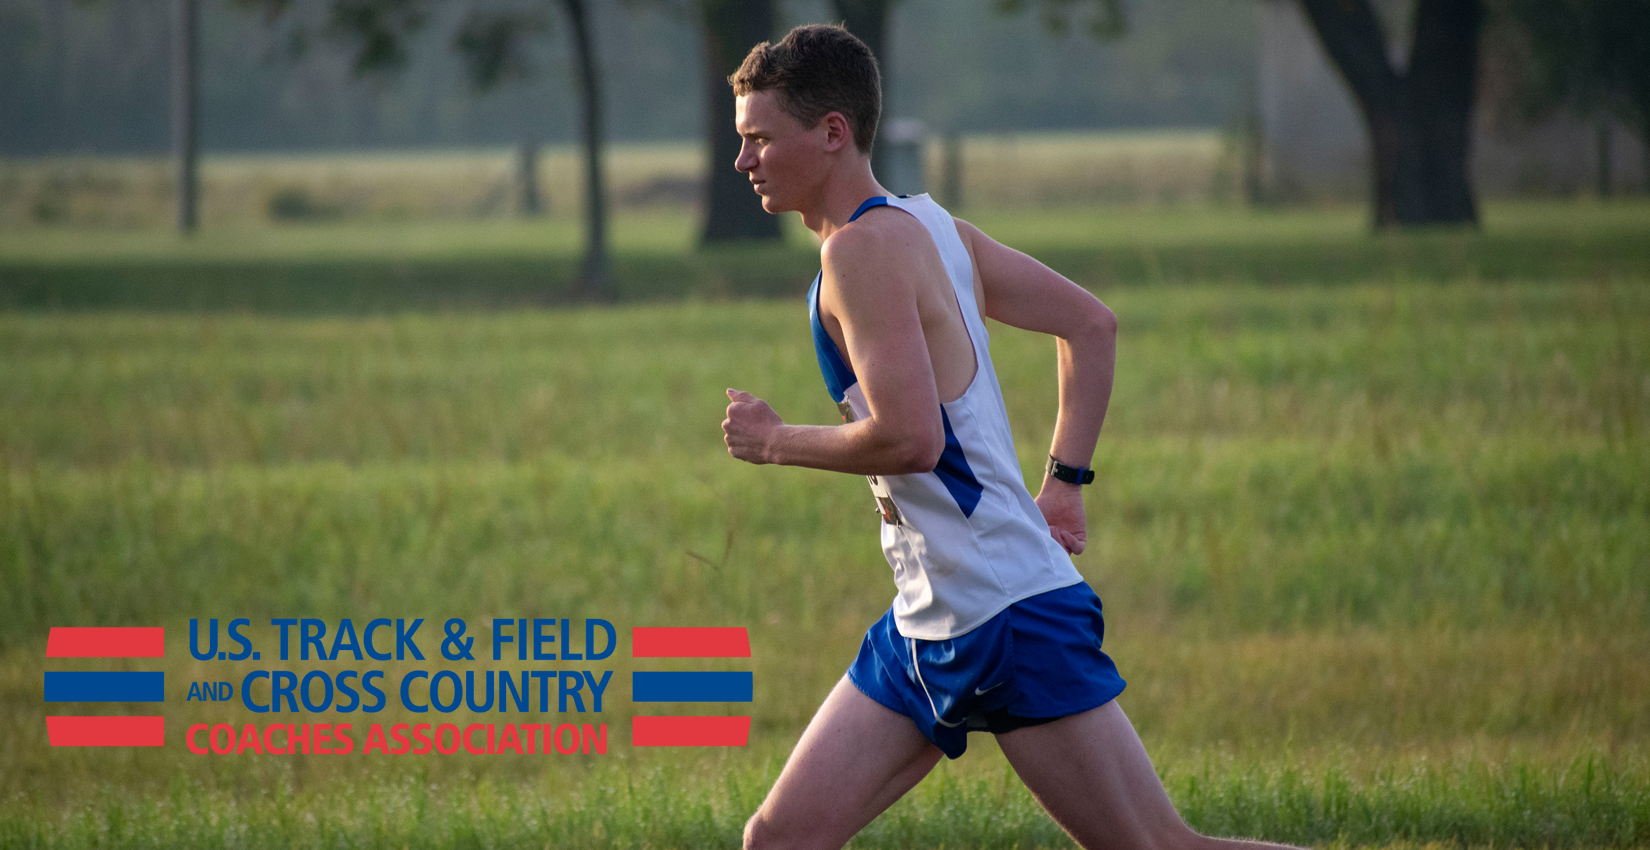 GC Men's Cross Country Team Earns Academic Honors